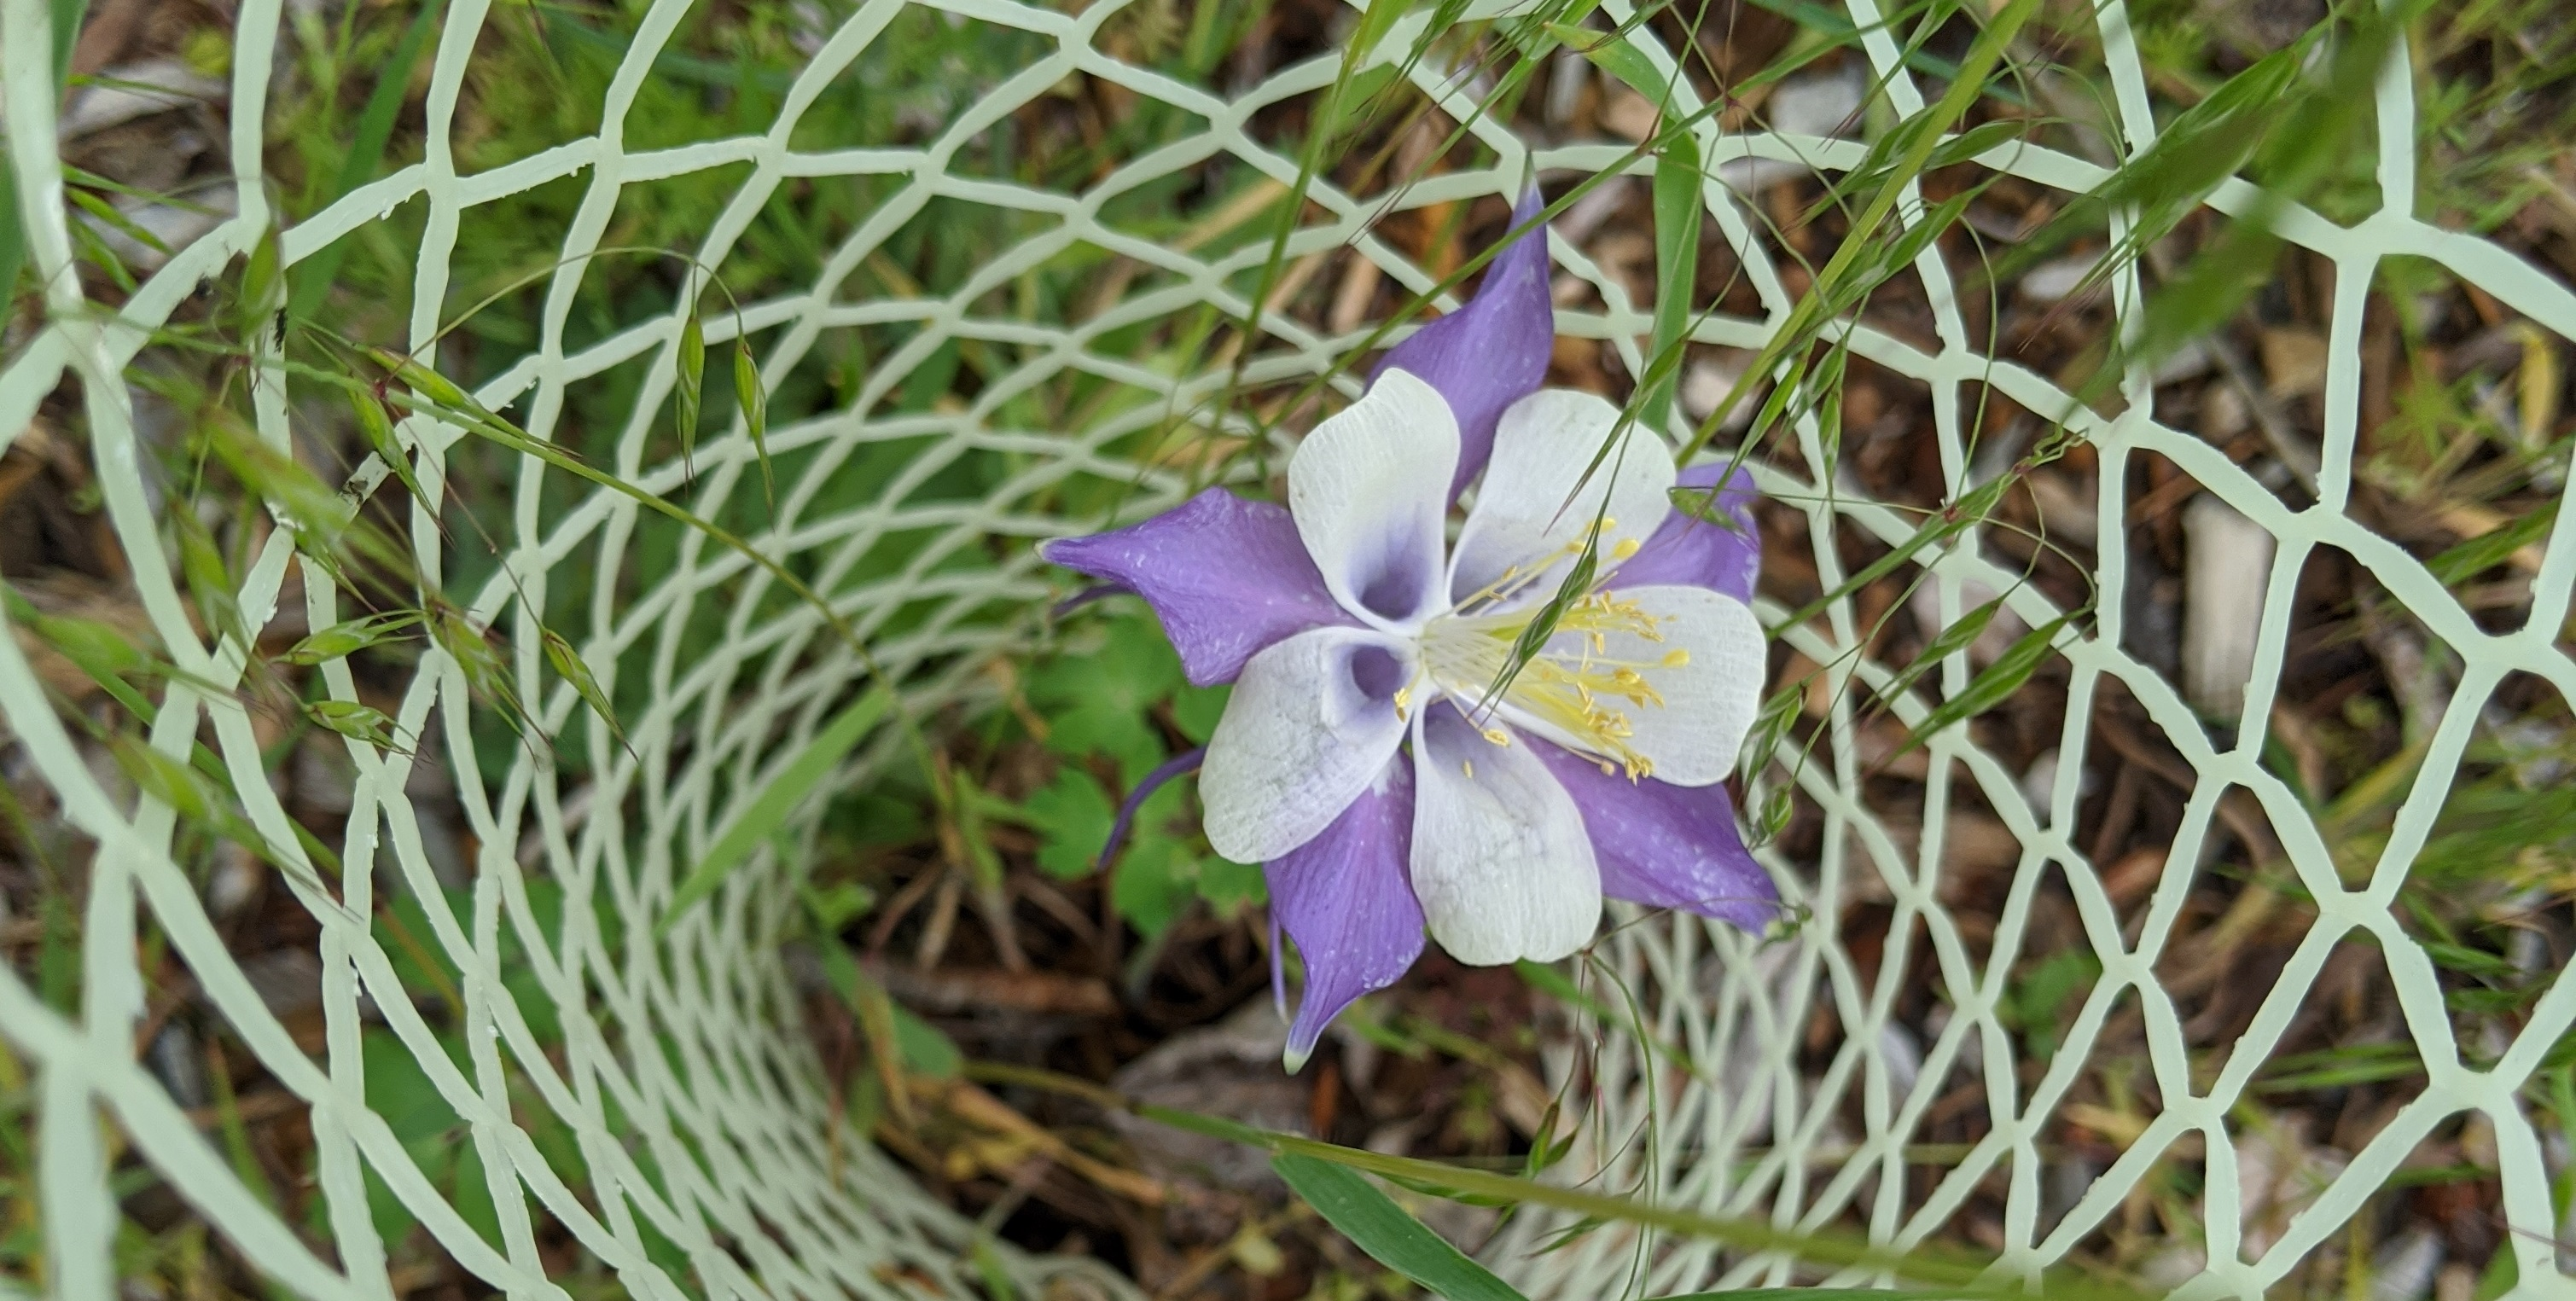 a purple and white columbine flower blooms, surrounded by a protective mesh seedling cage